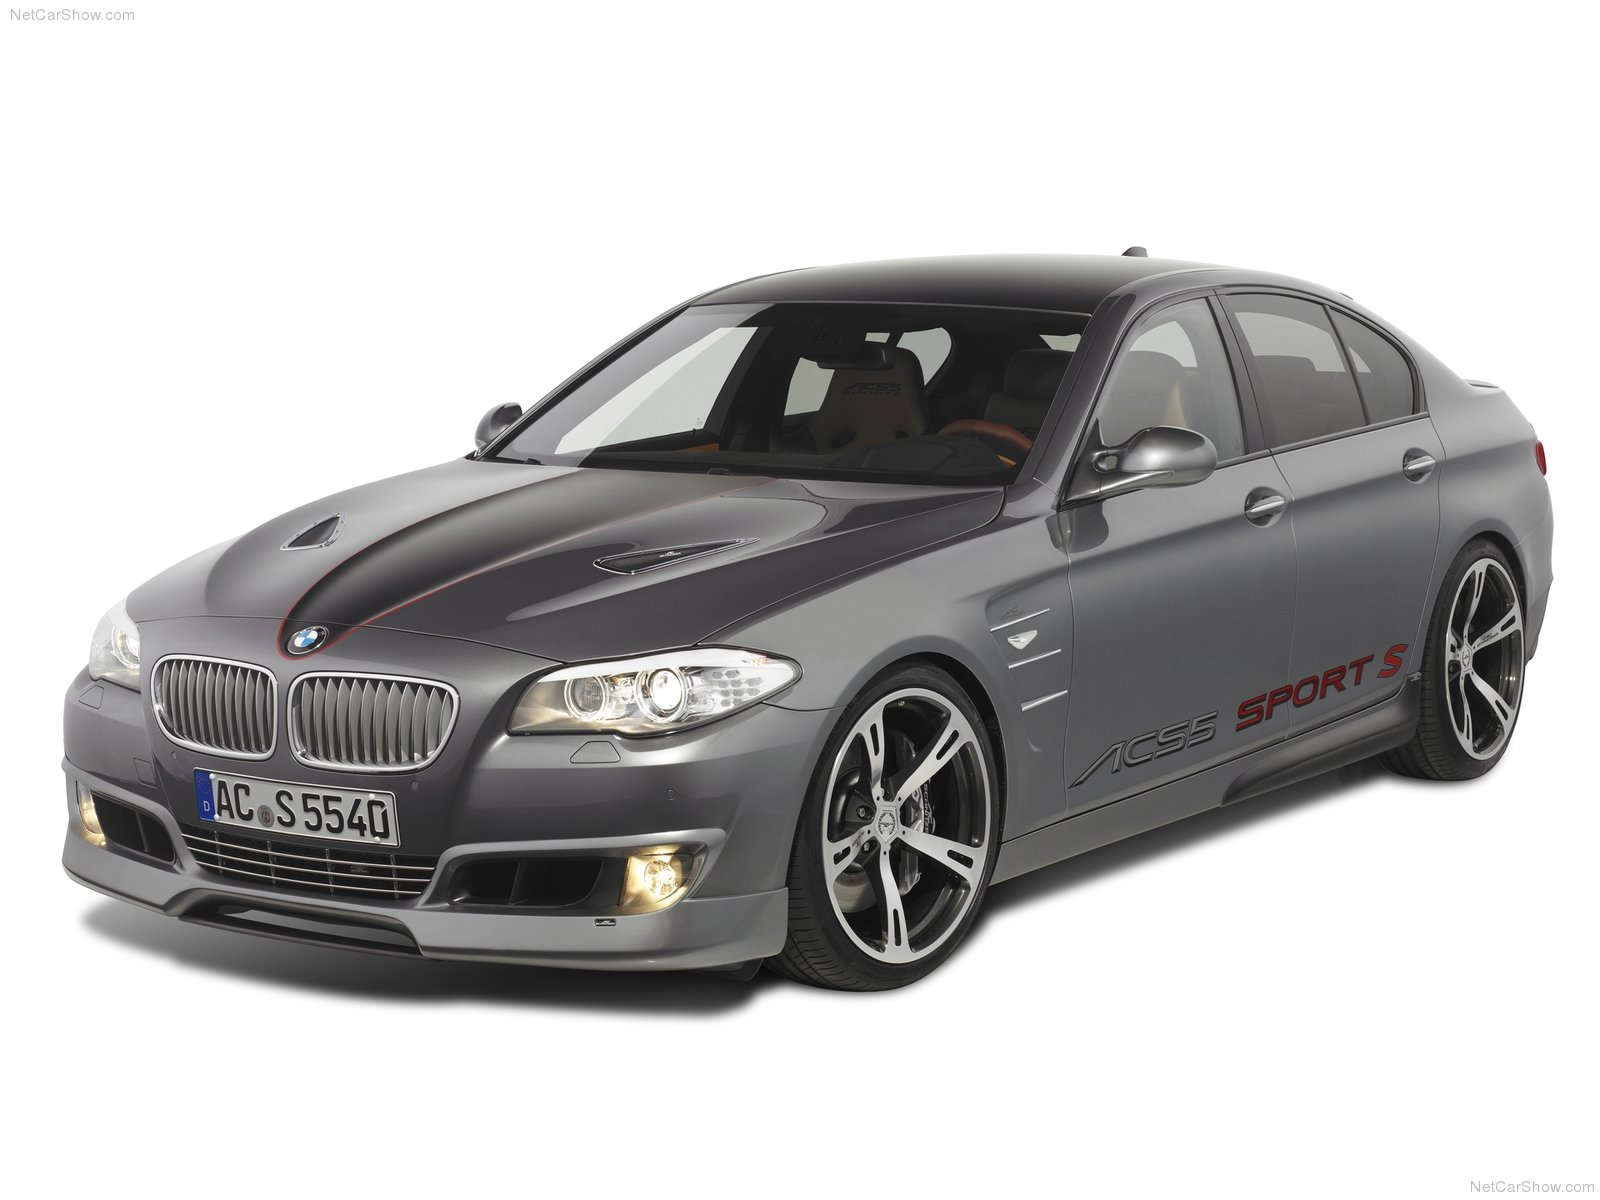 AC Schnitzer ACS5 Sport S photo #78475